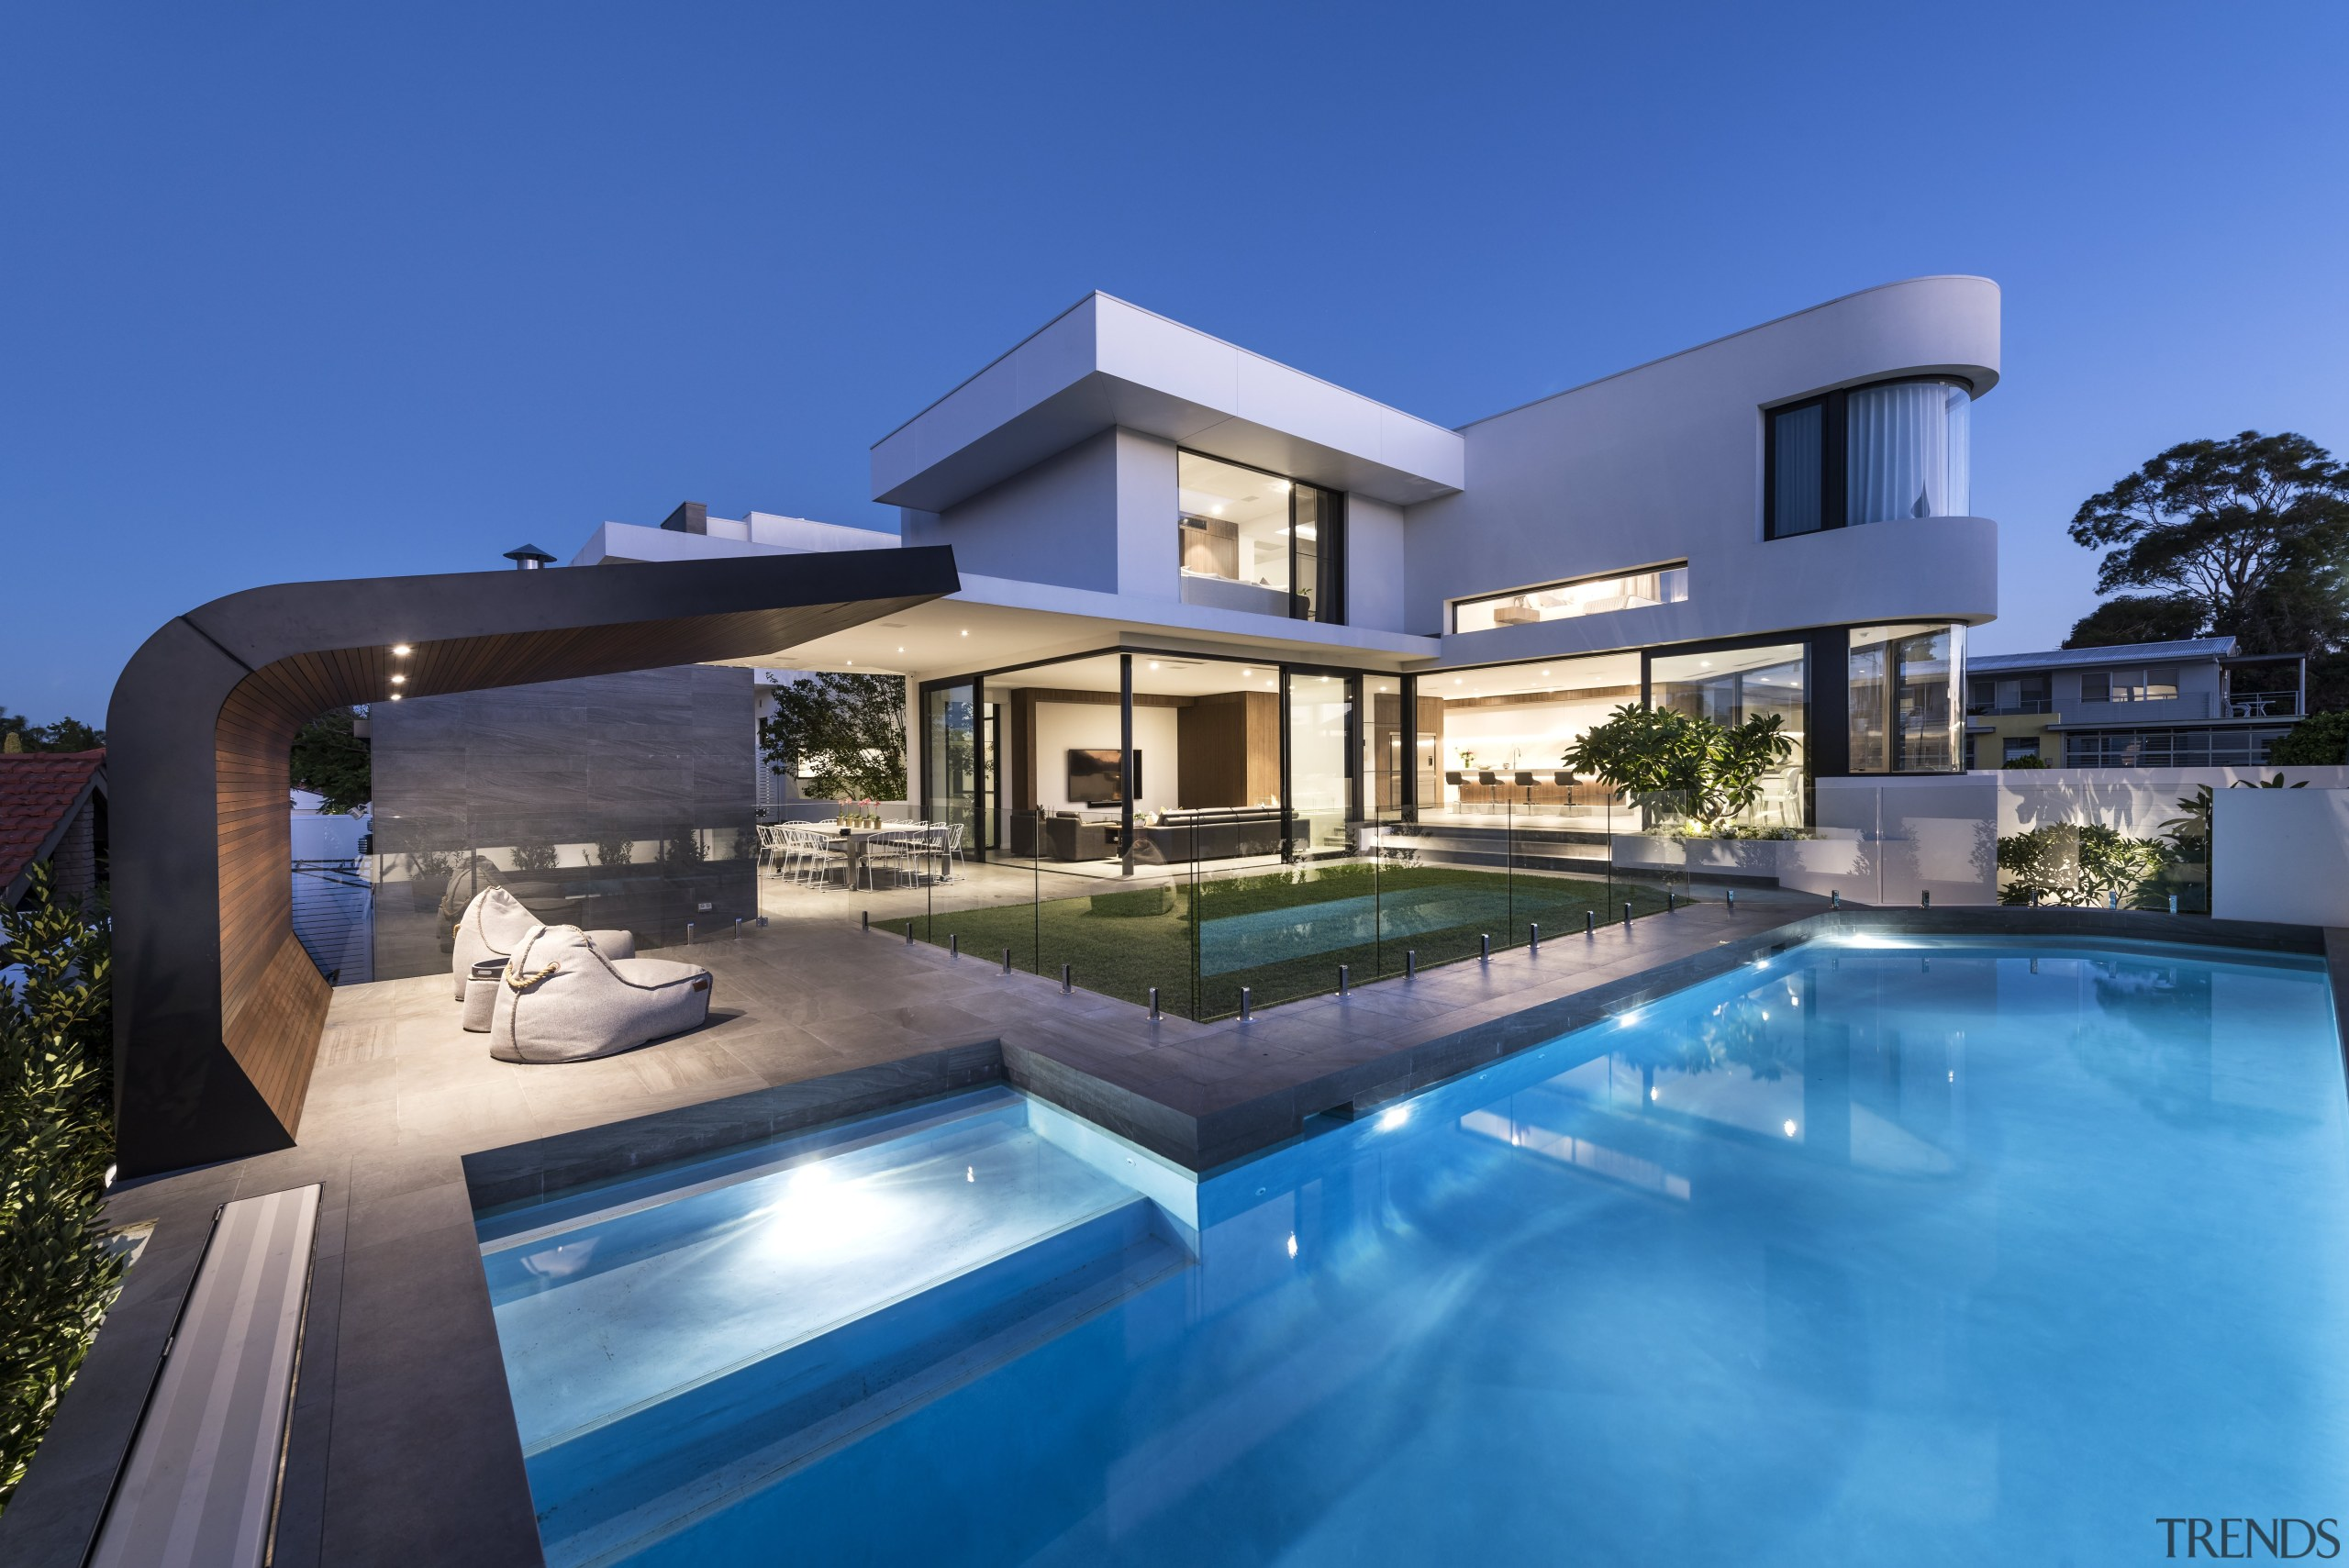 Pool – contemporary new home by Urbane Projects architecture, elevation, estate, facade, family car, home, house, mansion, property, real estate, residential area, resort, swimming pool, villa, blue